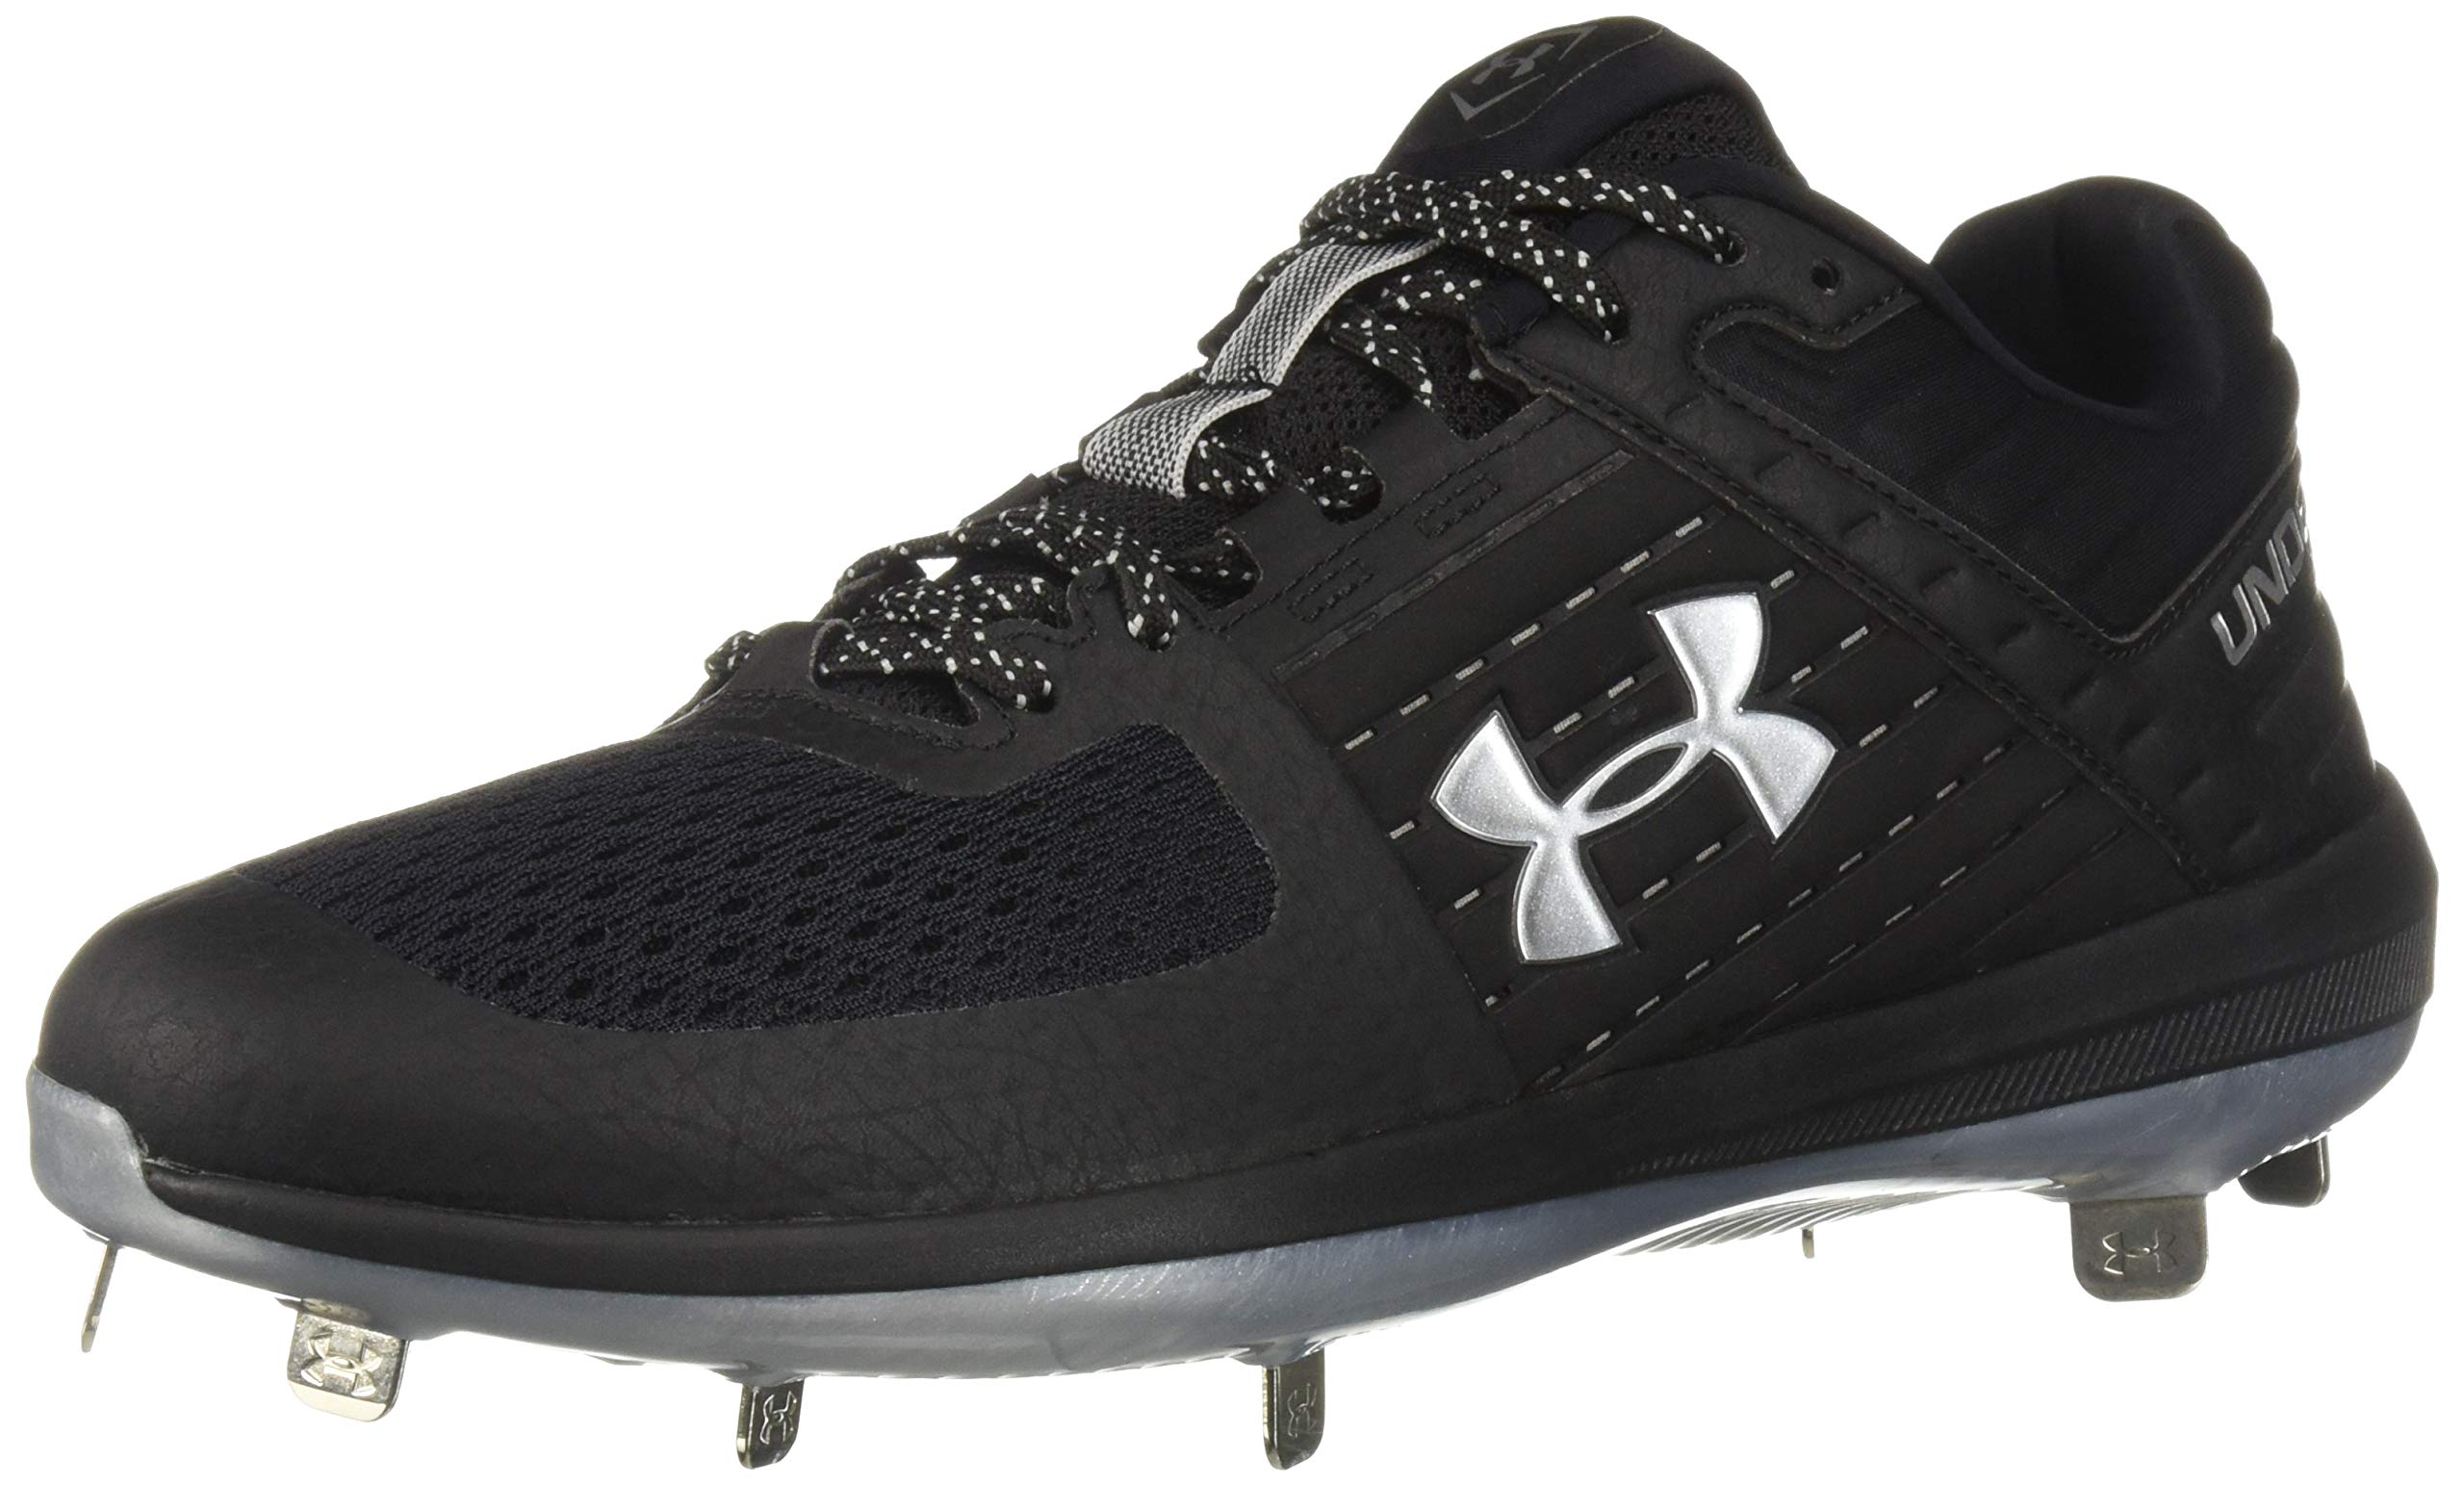 Under Armour Men's Yard Low ST Baseball Shoe, Black (002)/Metallic Silver, 14 by Under Armour